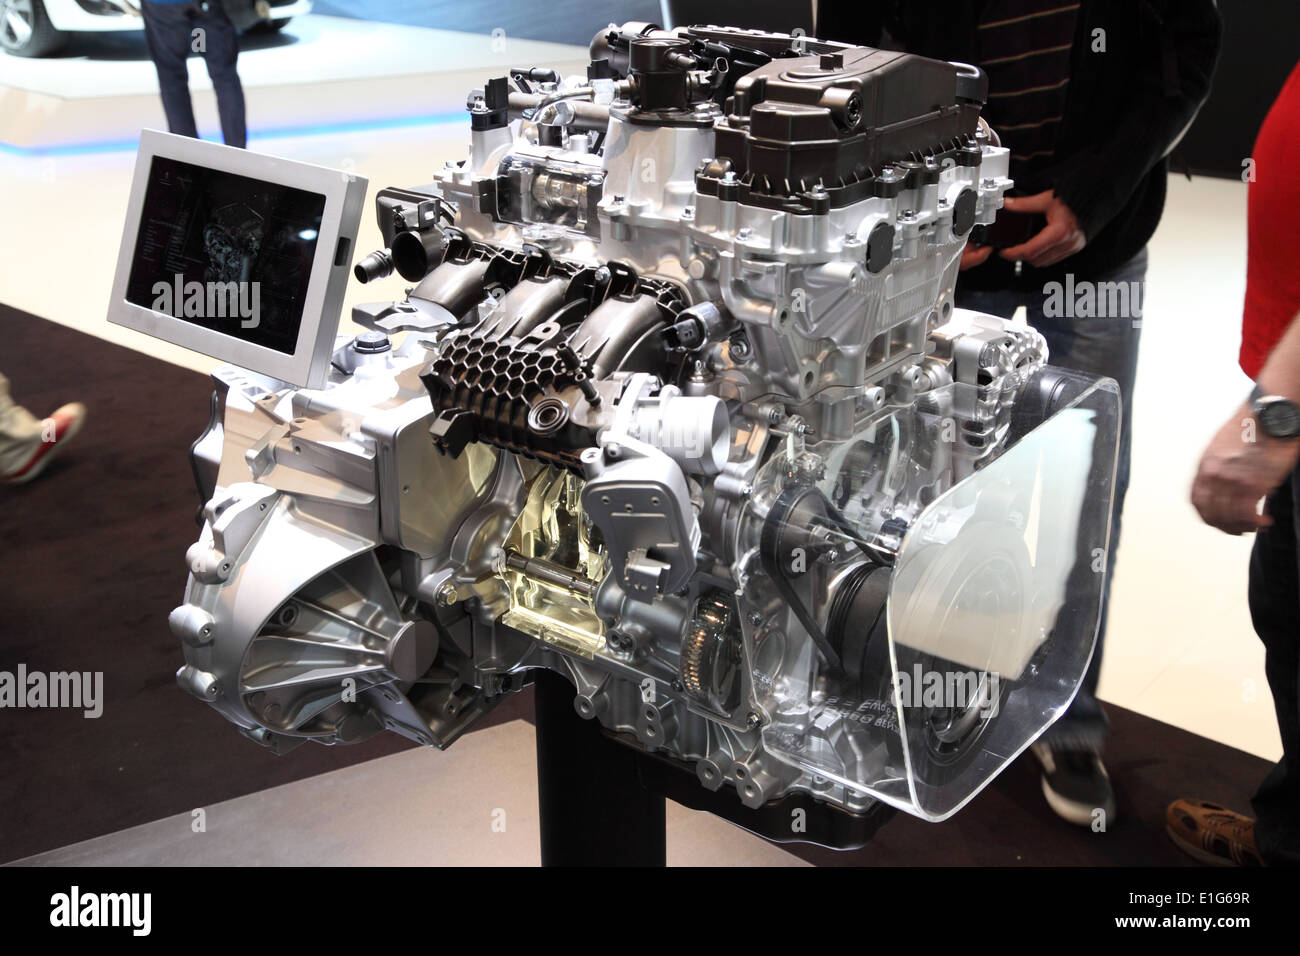 New Peugeot e-THP three cylinder motor at the AMI - Auto Mobile International Trade Fair on June 1st, 2014 in Leipzig, Saxony, G - Stock Image